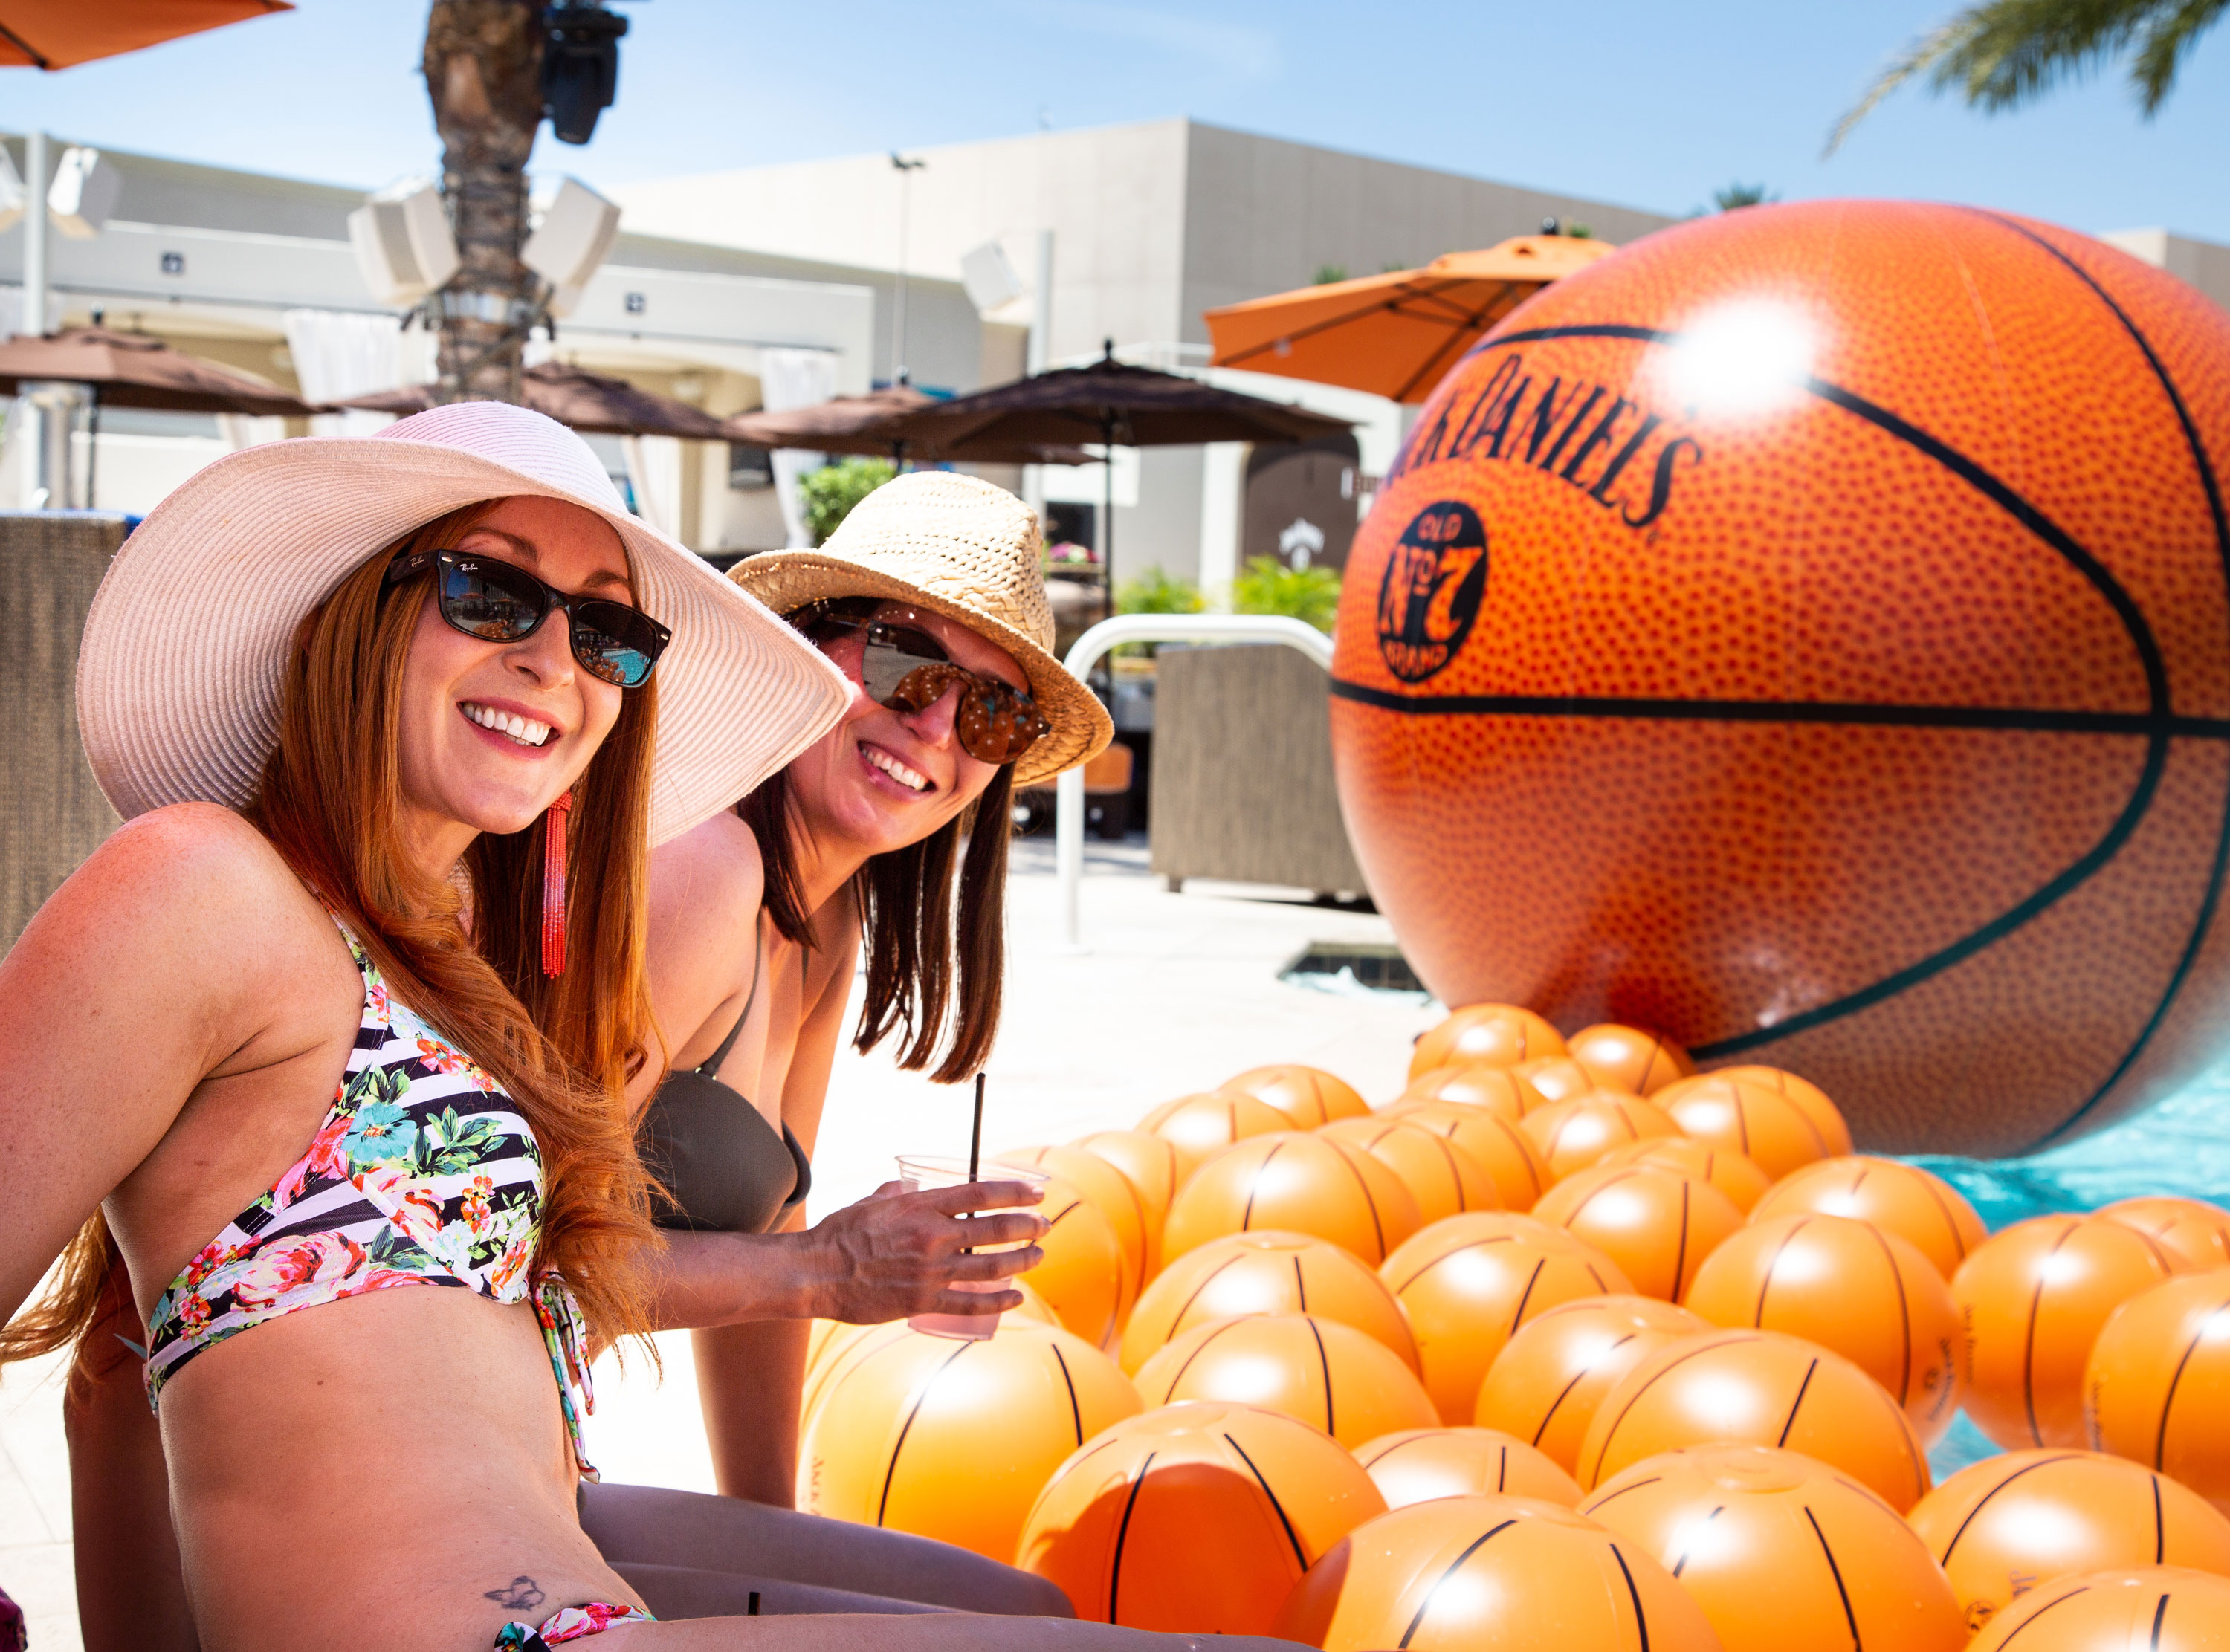 Two ladies by the pool at Jack Daniel's NBA Summer League